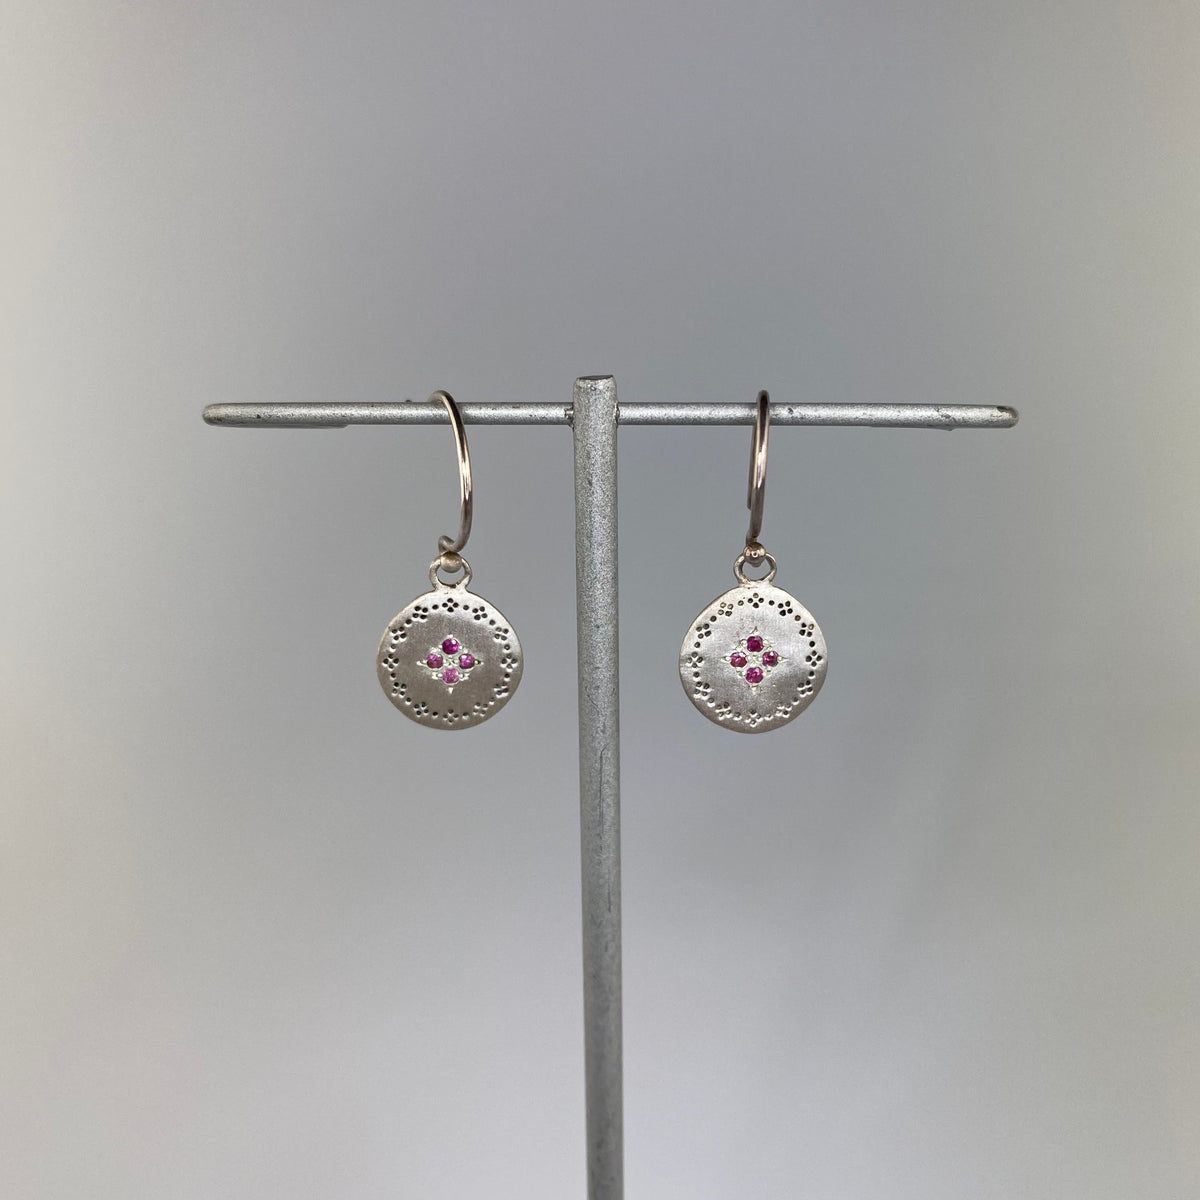 Four Star Nostalgia Earrings with Pink Sapphire - Heart of the Home PA